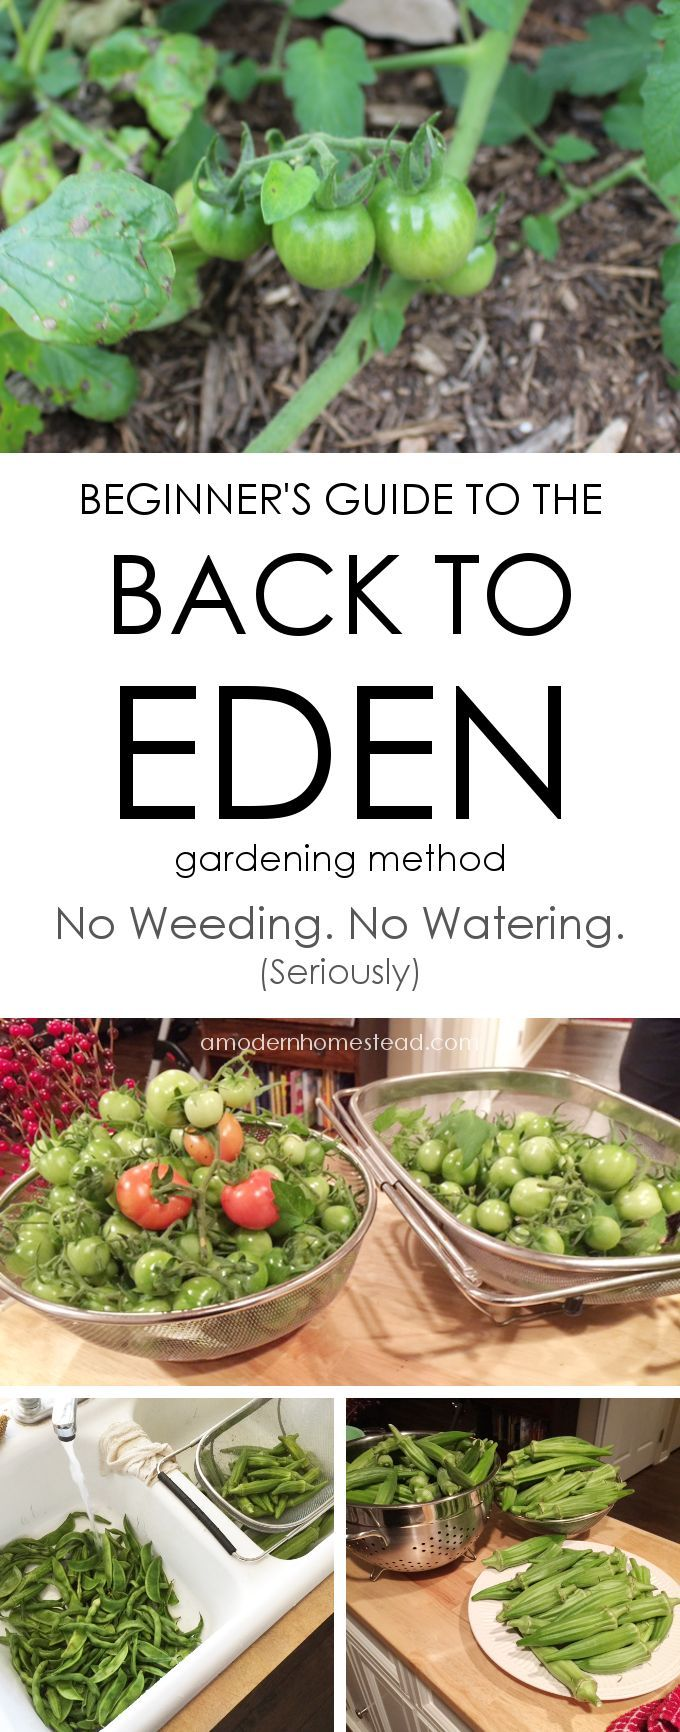 Getting Started With The Back To Eden Gardening Method How To Start A Back To Eden Garden Bed